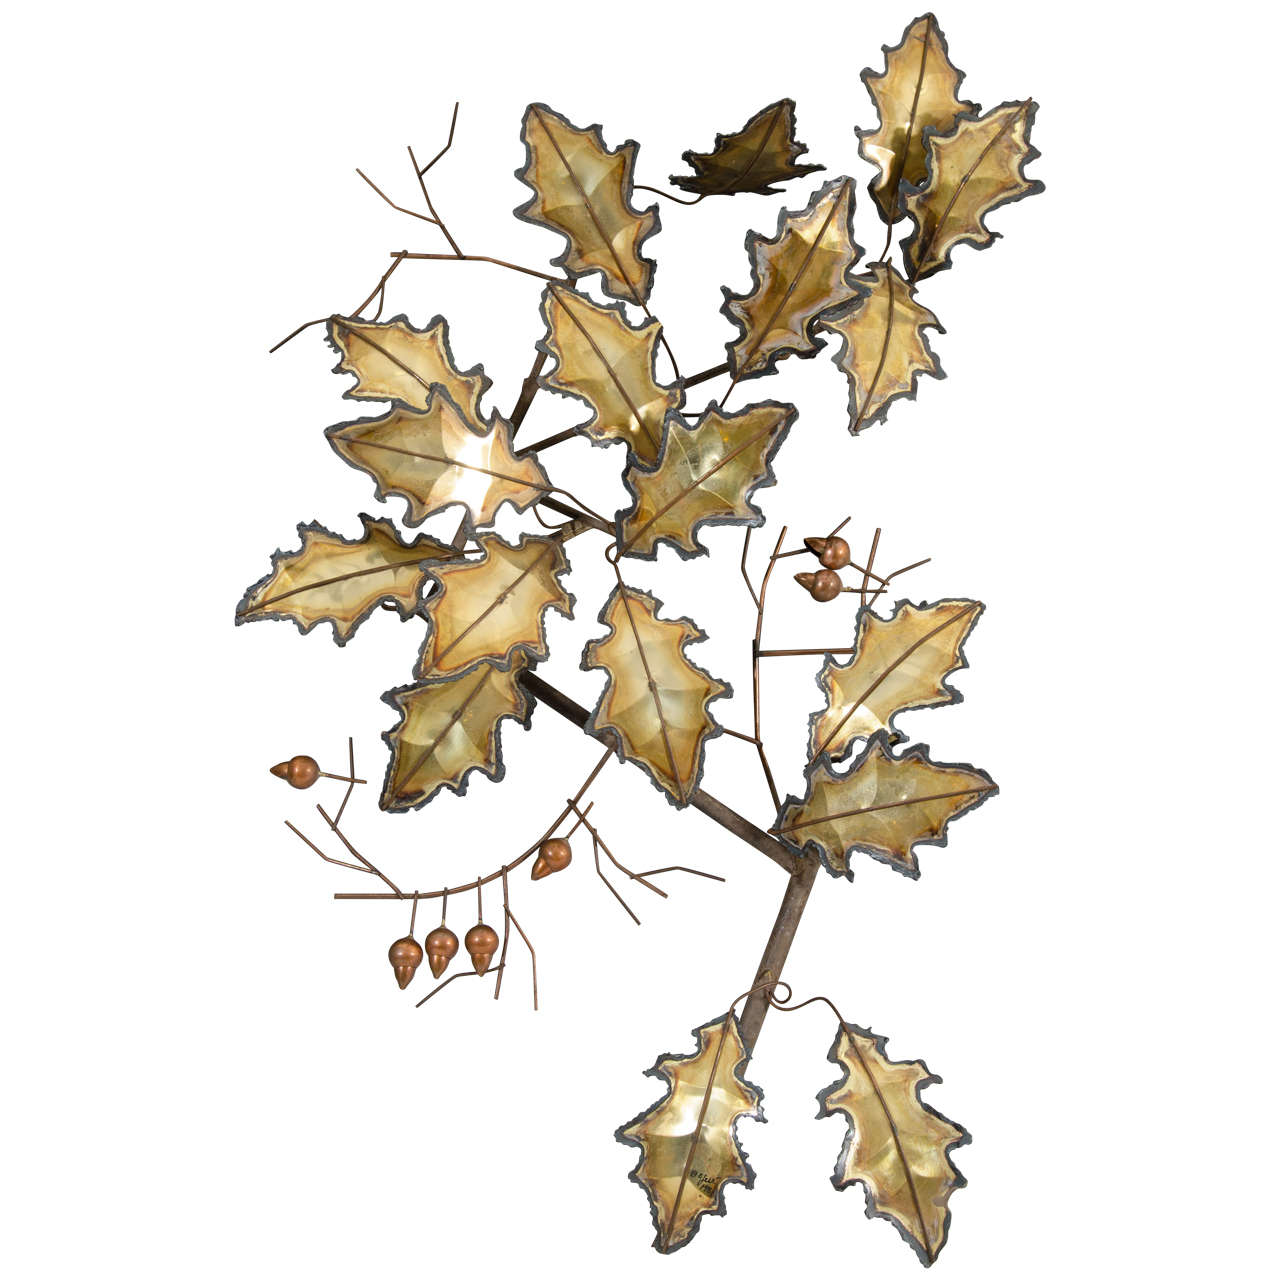 Midcentury Curtis Jere Wall Sculpture of Leaves 1